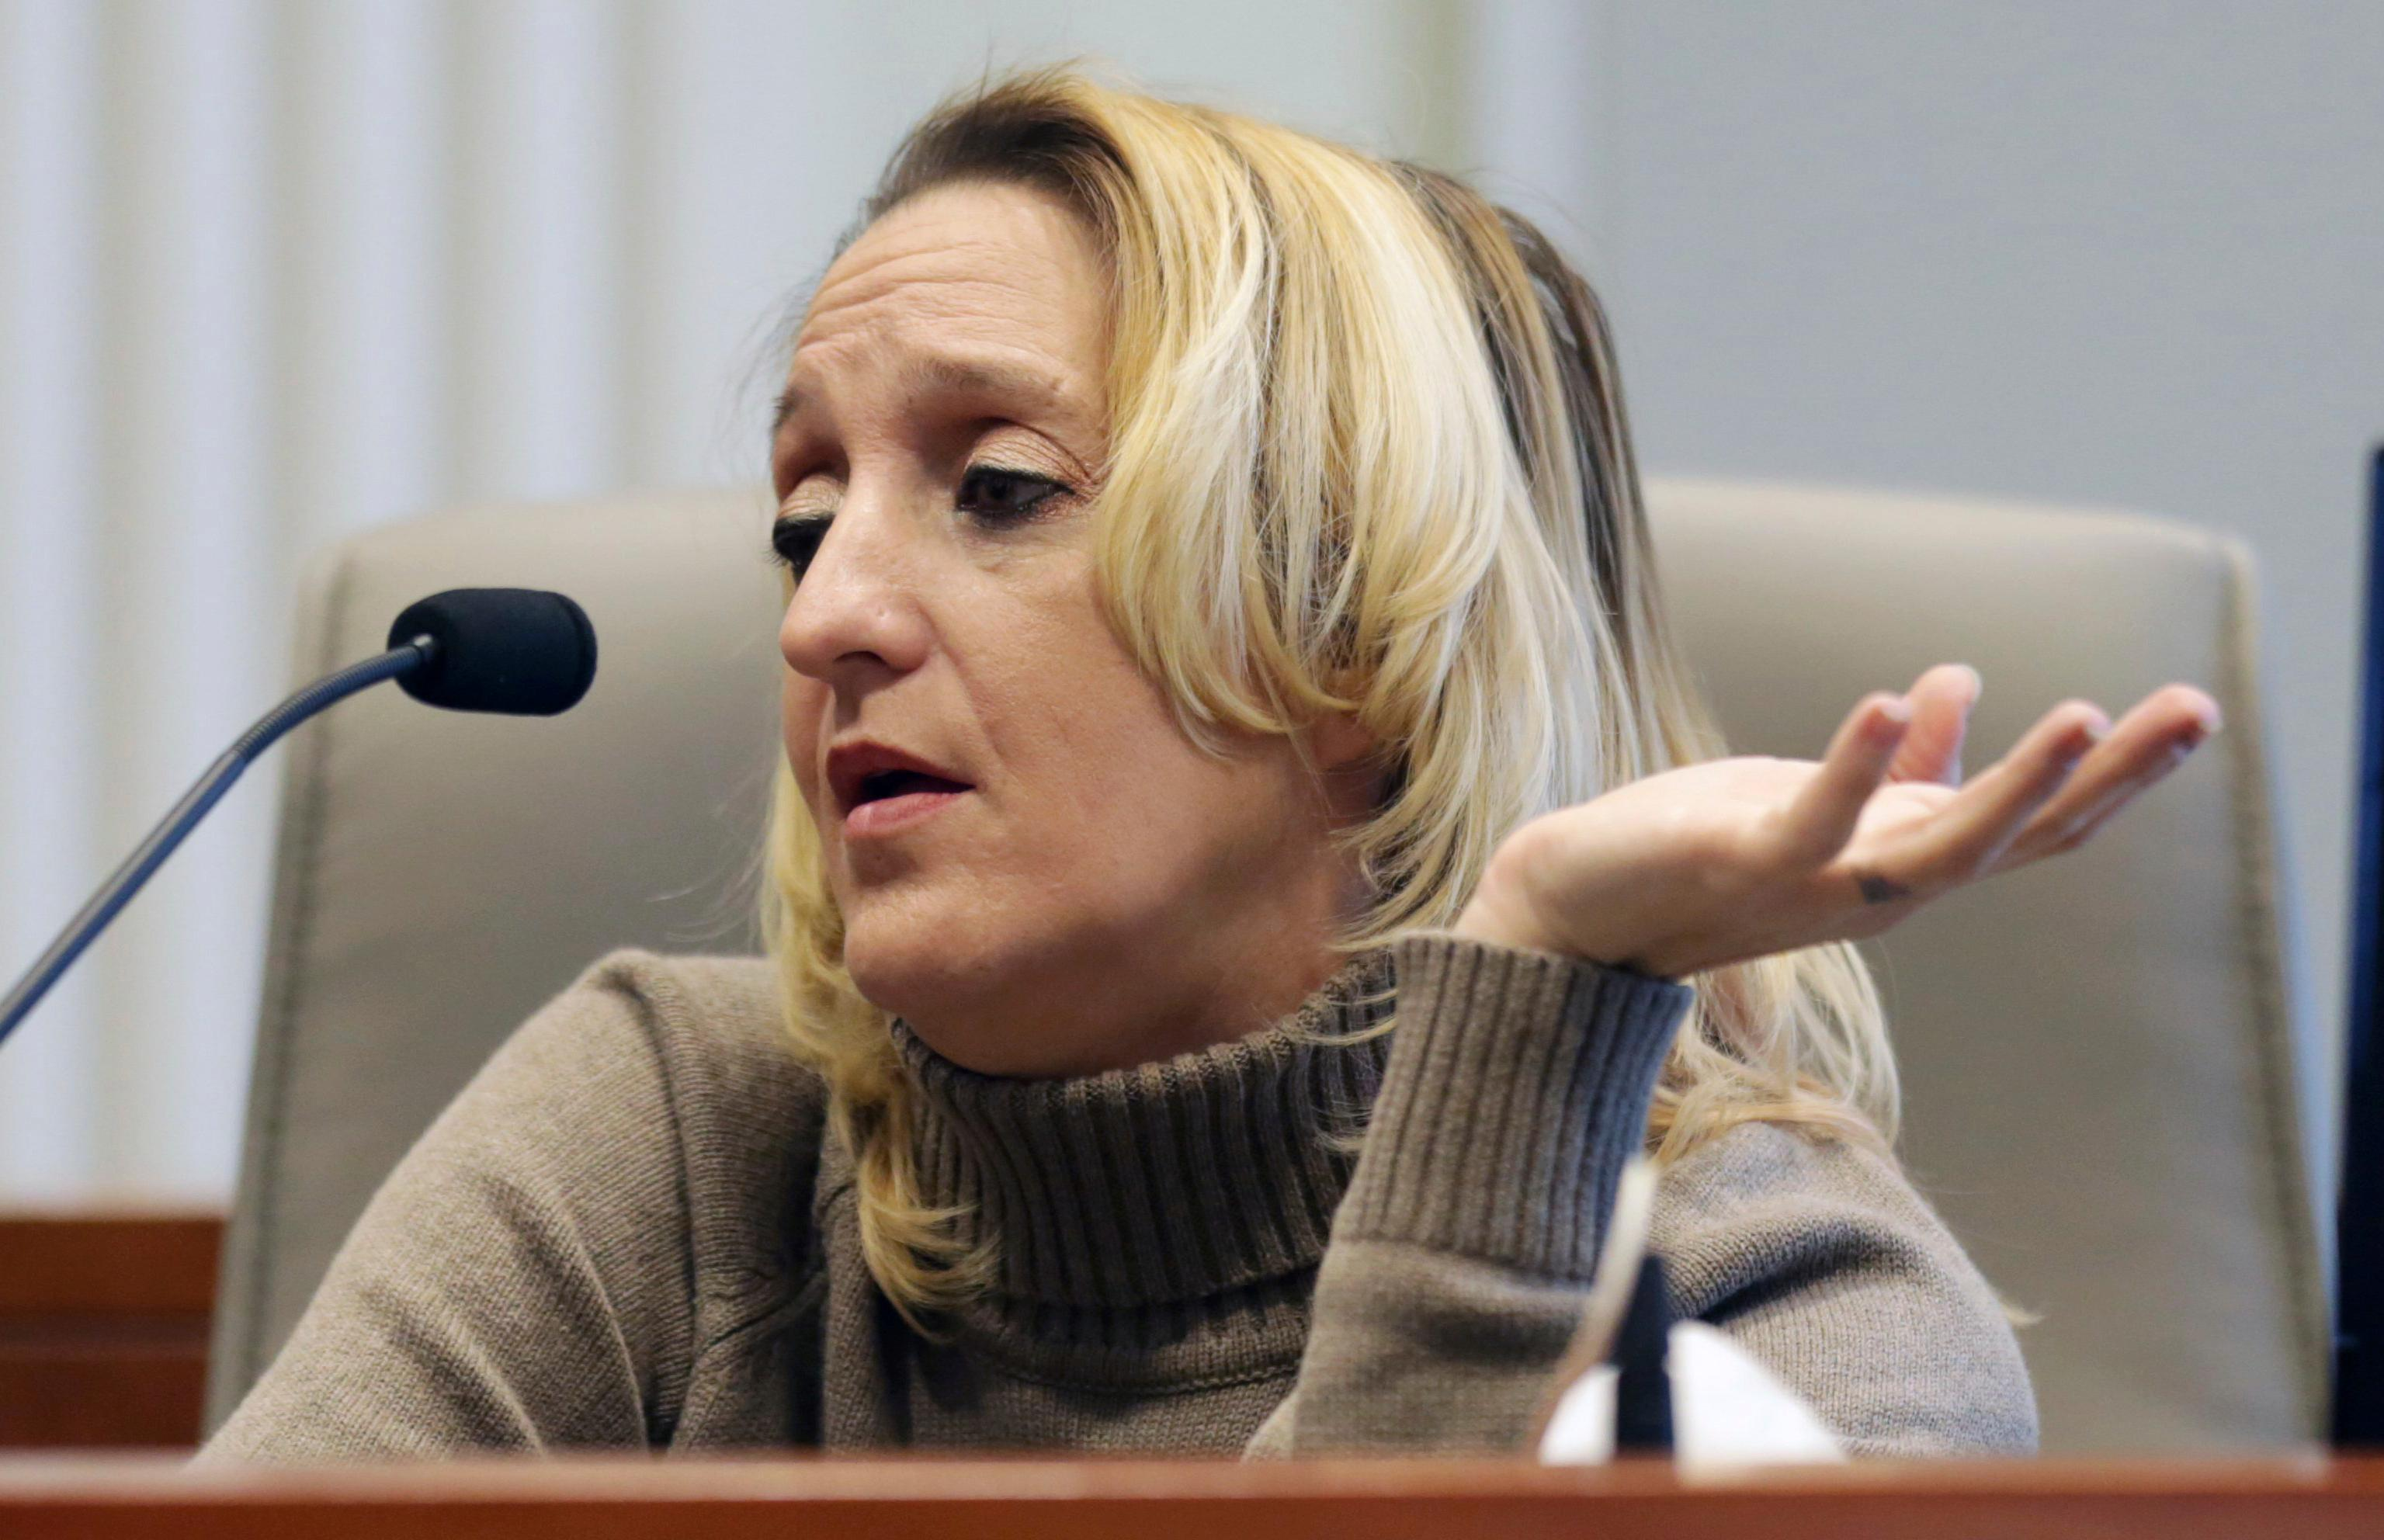 Lisa Britt answers a question by executive director of the Board of Elections Kim Strach during the public evidentiary hearing on the 9th Congressional District investigation Monday, Feb. 18, 2019, at the North Carolina State Bar in Raleigh, N.C. (Juli Leonard/The News & Observer via AP, Pool)